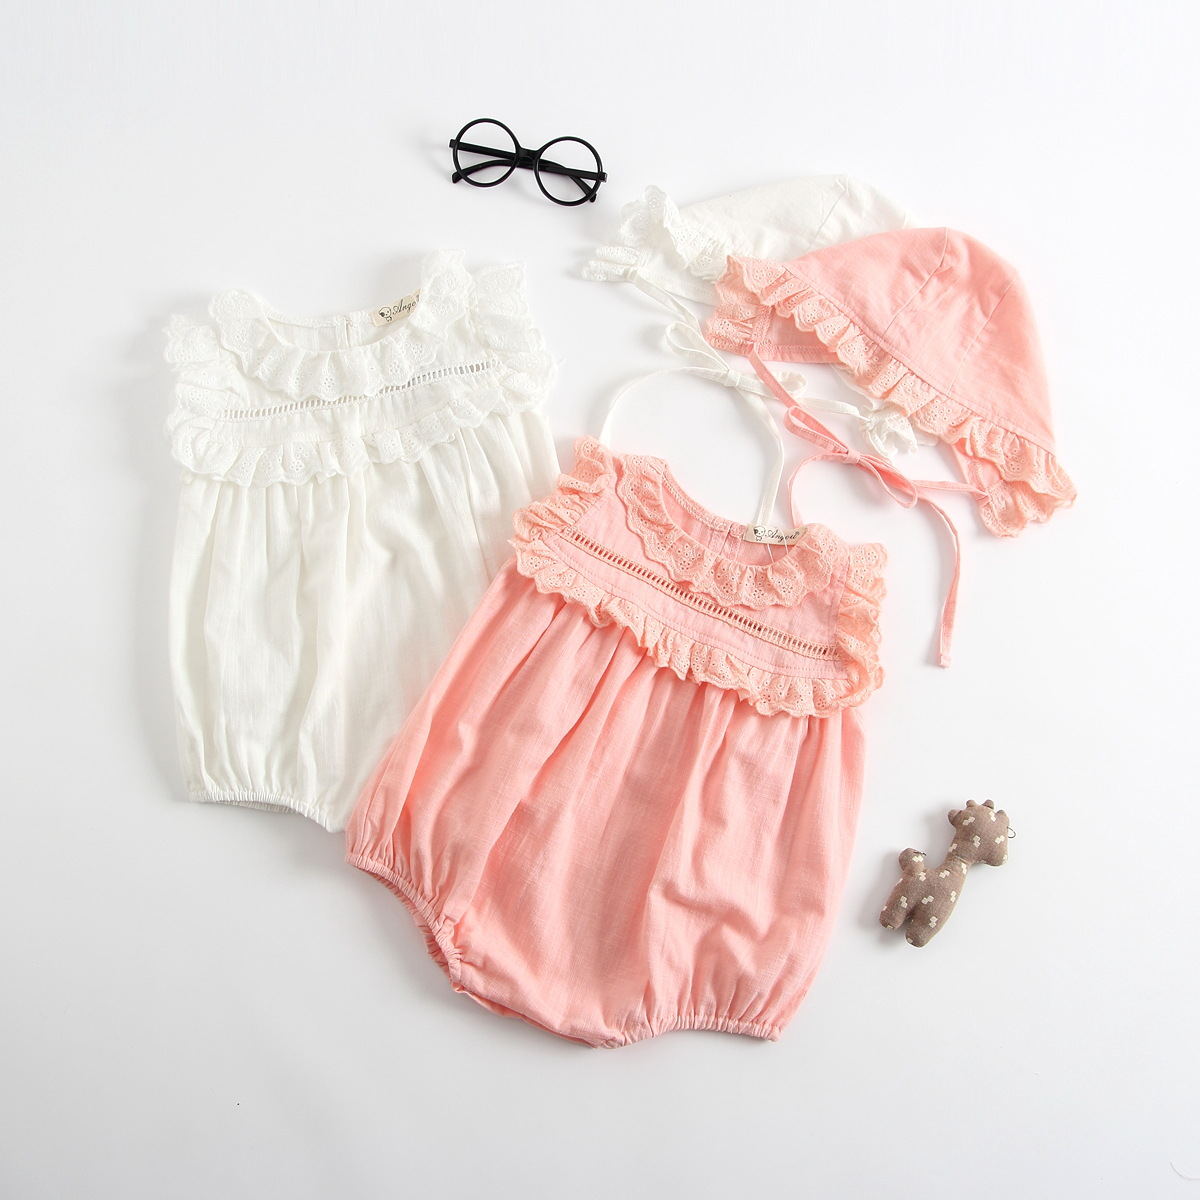 Baby Rompers Summer Thin Baby Girl Clothes Baby Girl Lace Dress 2018 Newborn Baby Clothes Roupas Bebe Infant Jumpsuits with Hat mother nest 3sets lot wholesale autumn toddle girl long sleeve baby clothing one piece boys baby pajamas infant clothes rompers